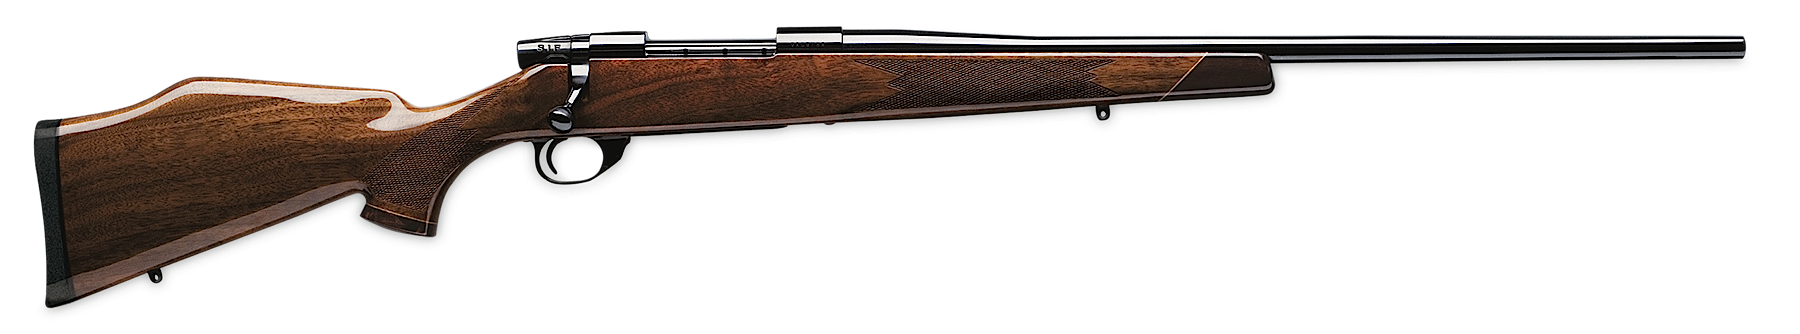 Weatherby 5 + 1 240 Weatherby Mark V Deluxe/24